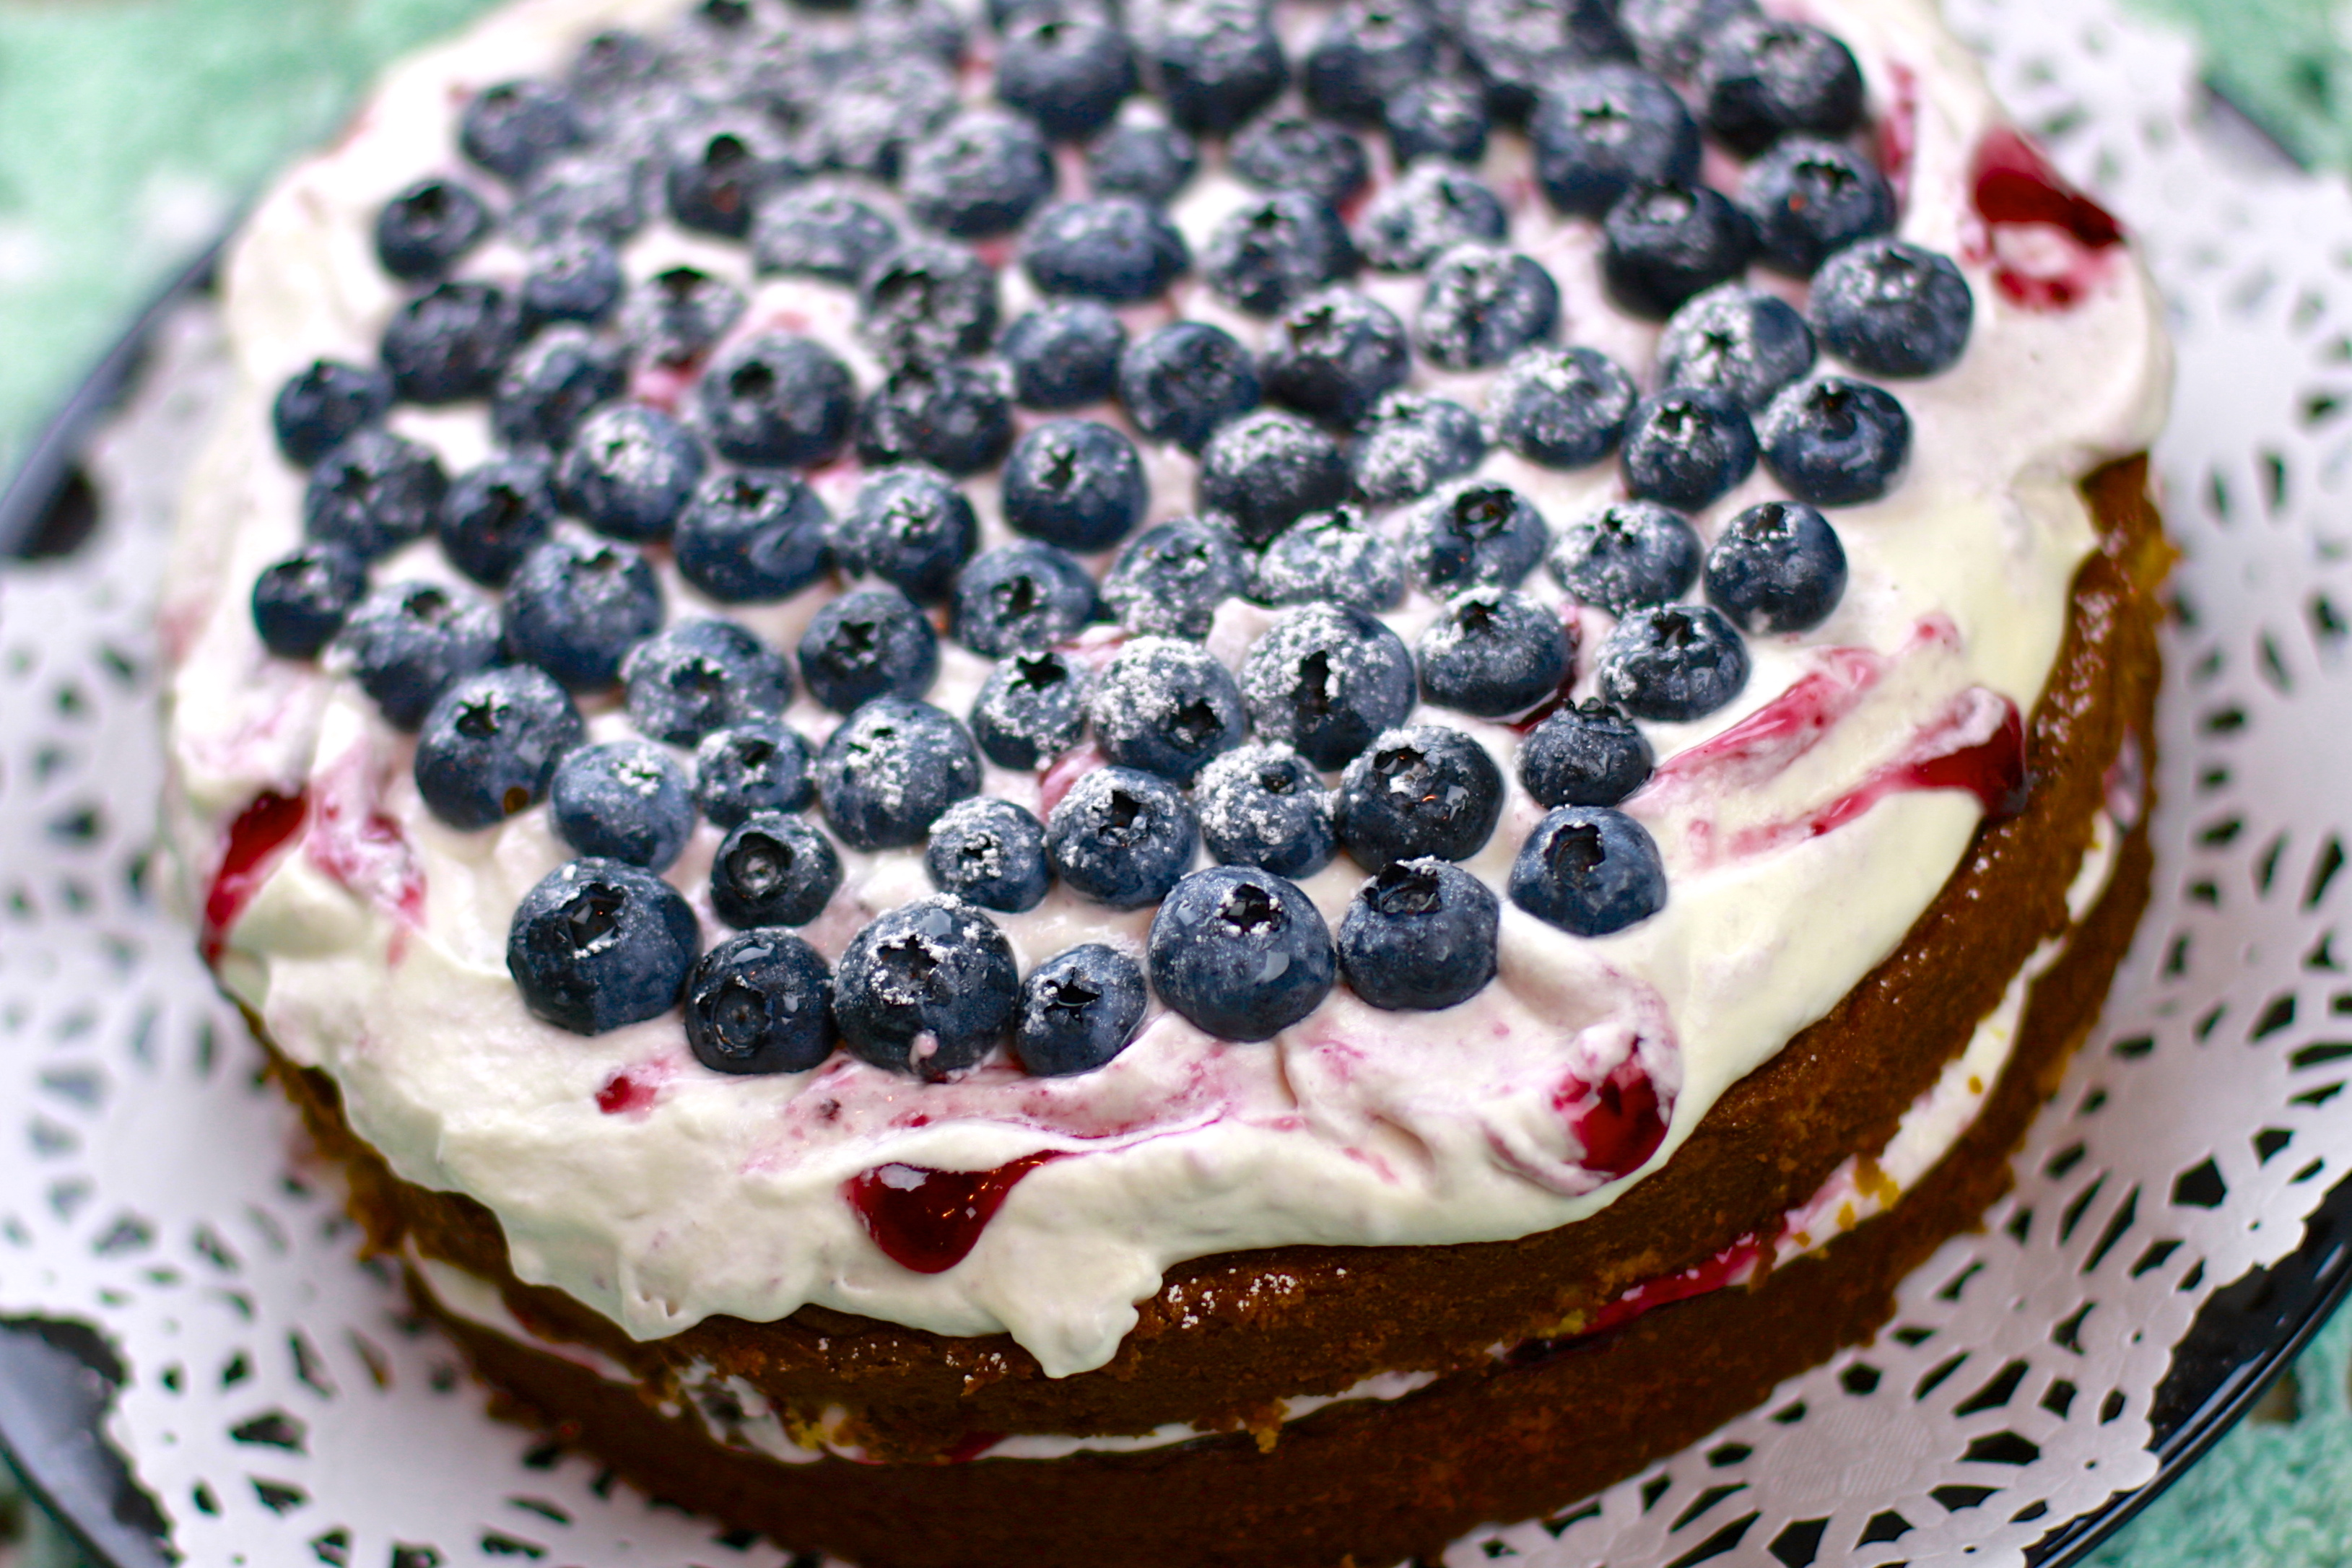 Blueberry Cake – Enjoy Berries While It's Still in Season!